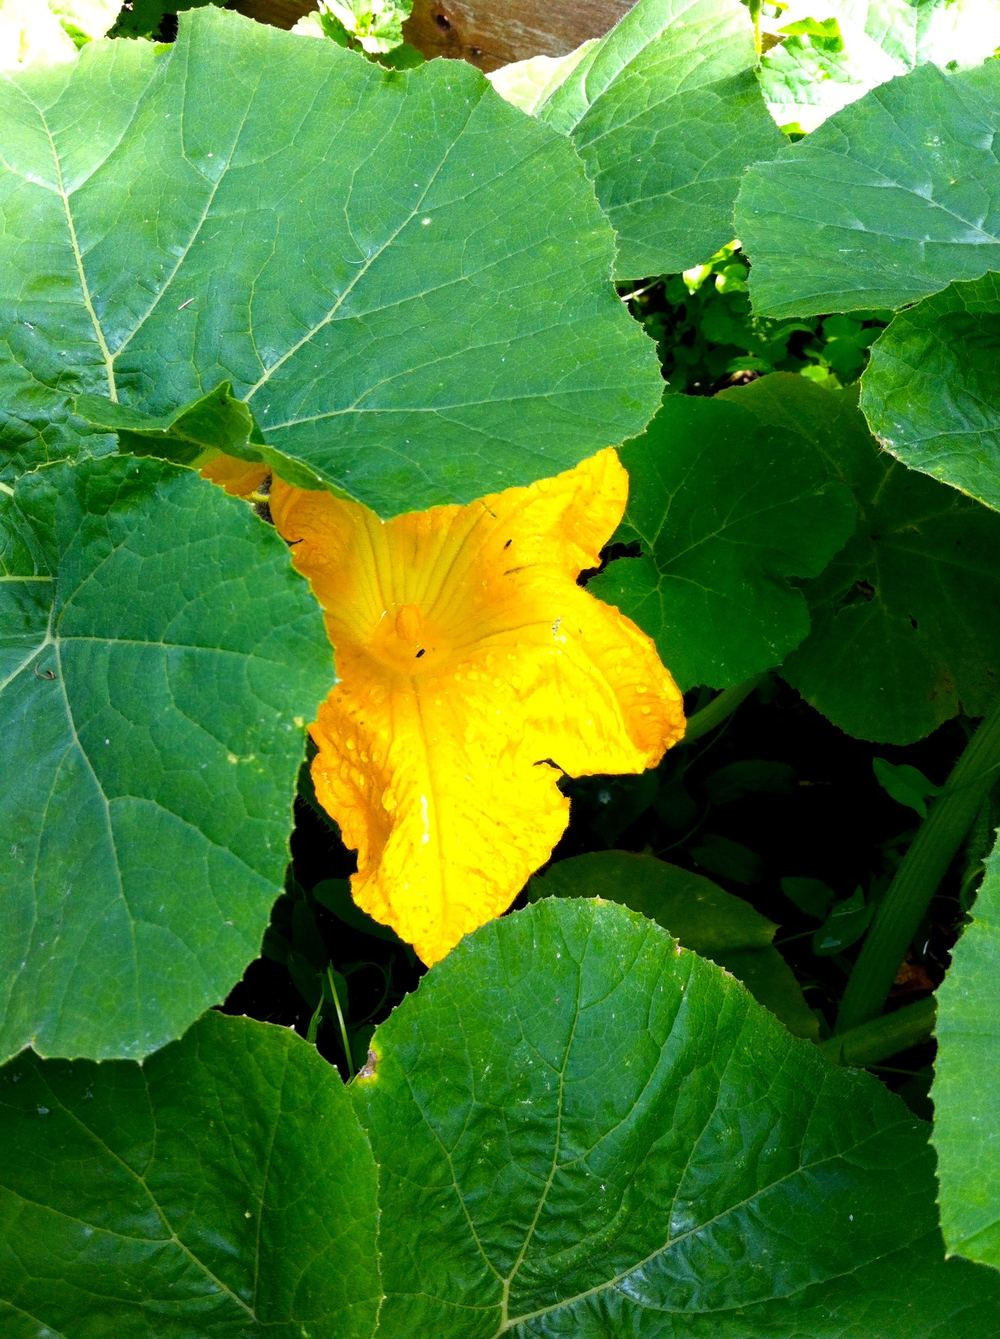 flowers on the squashes too